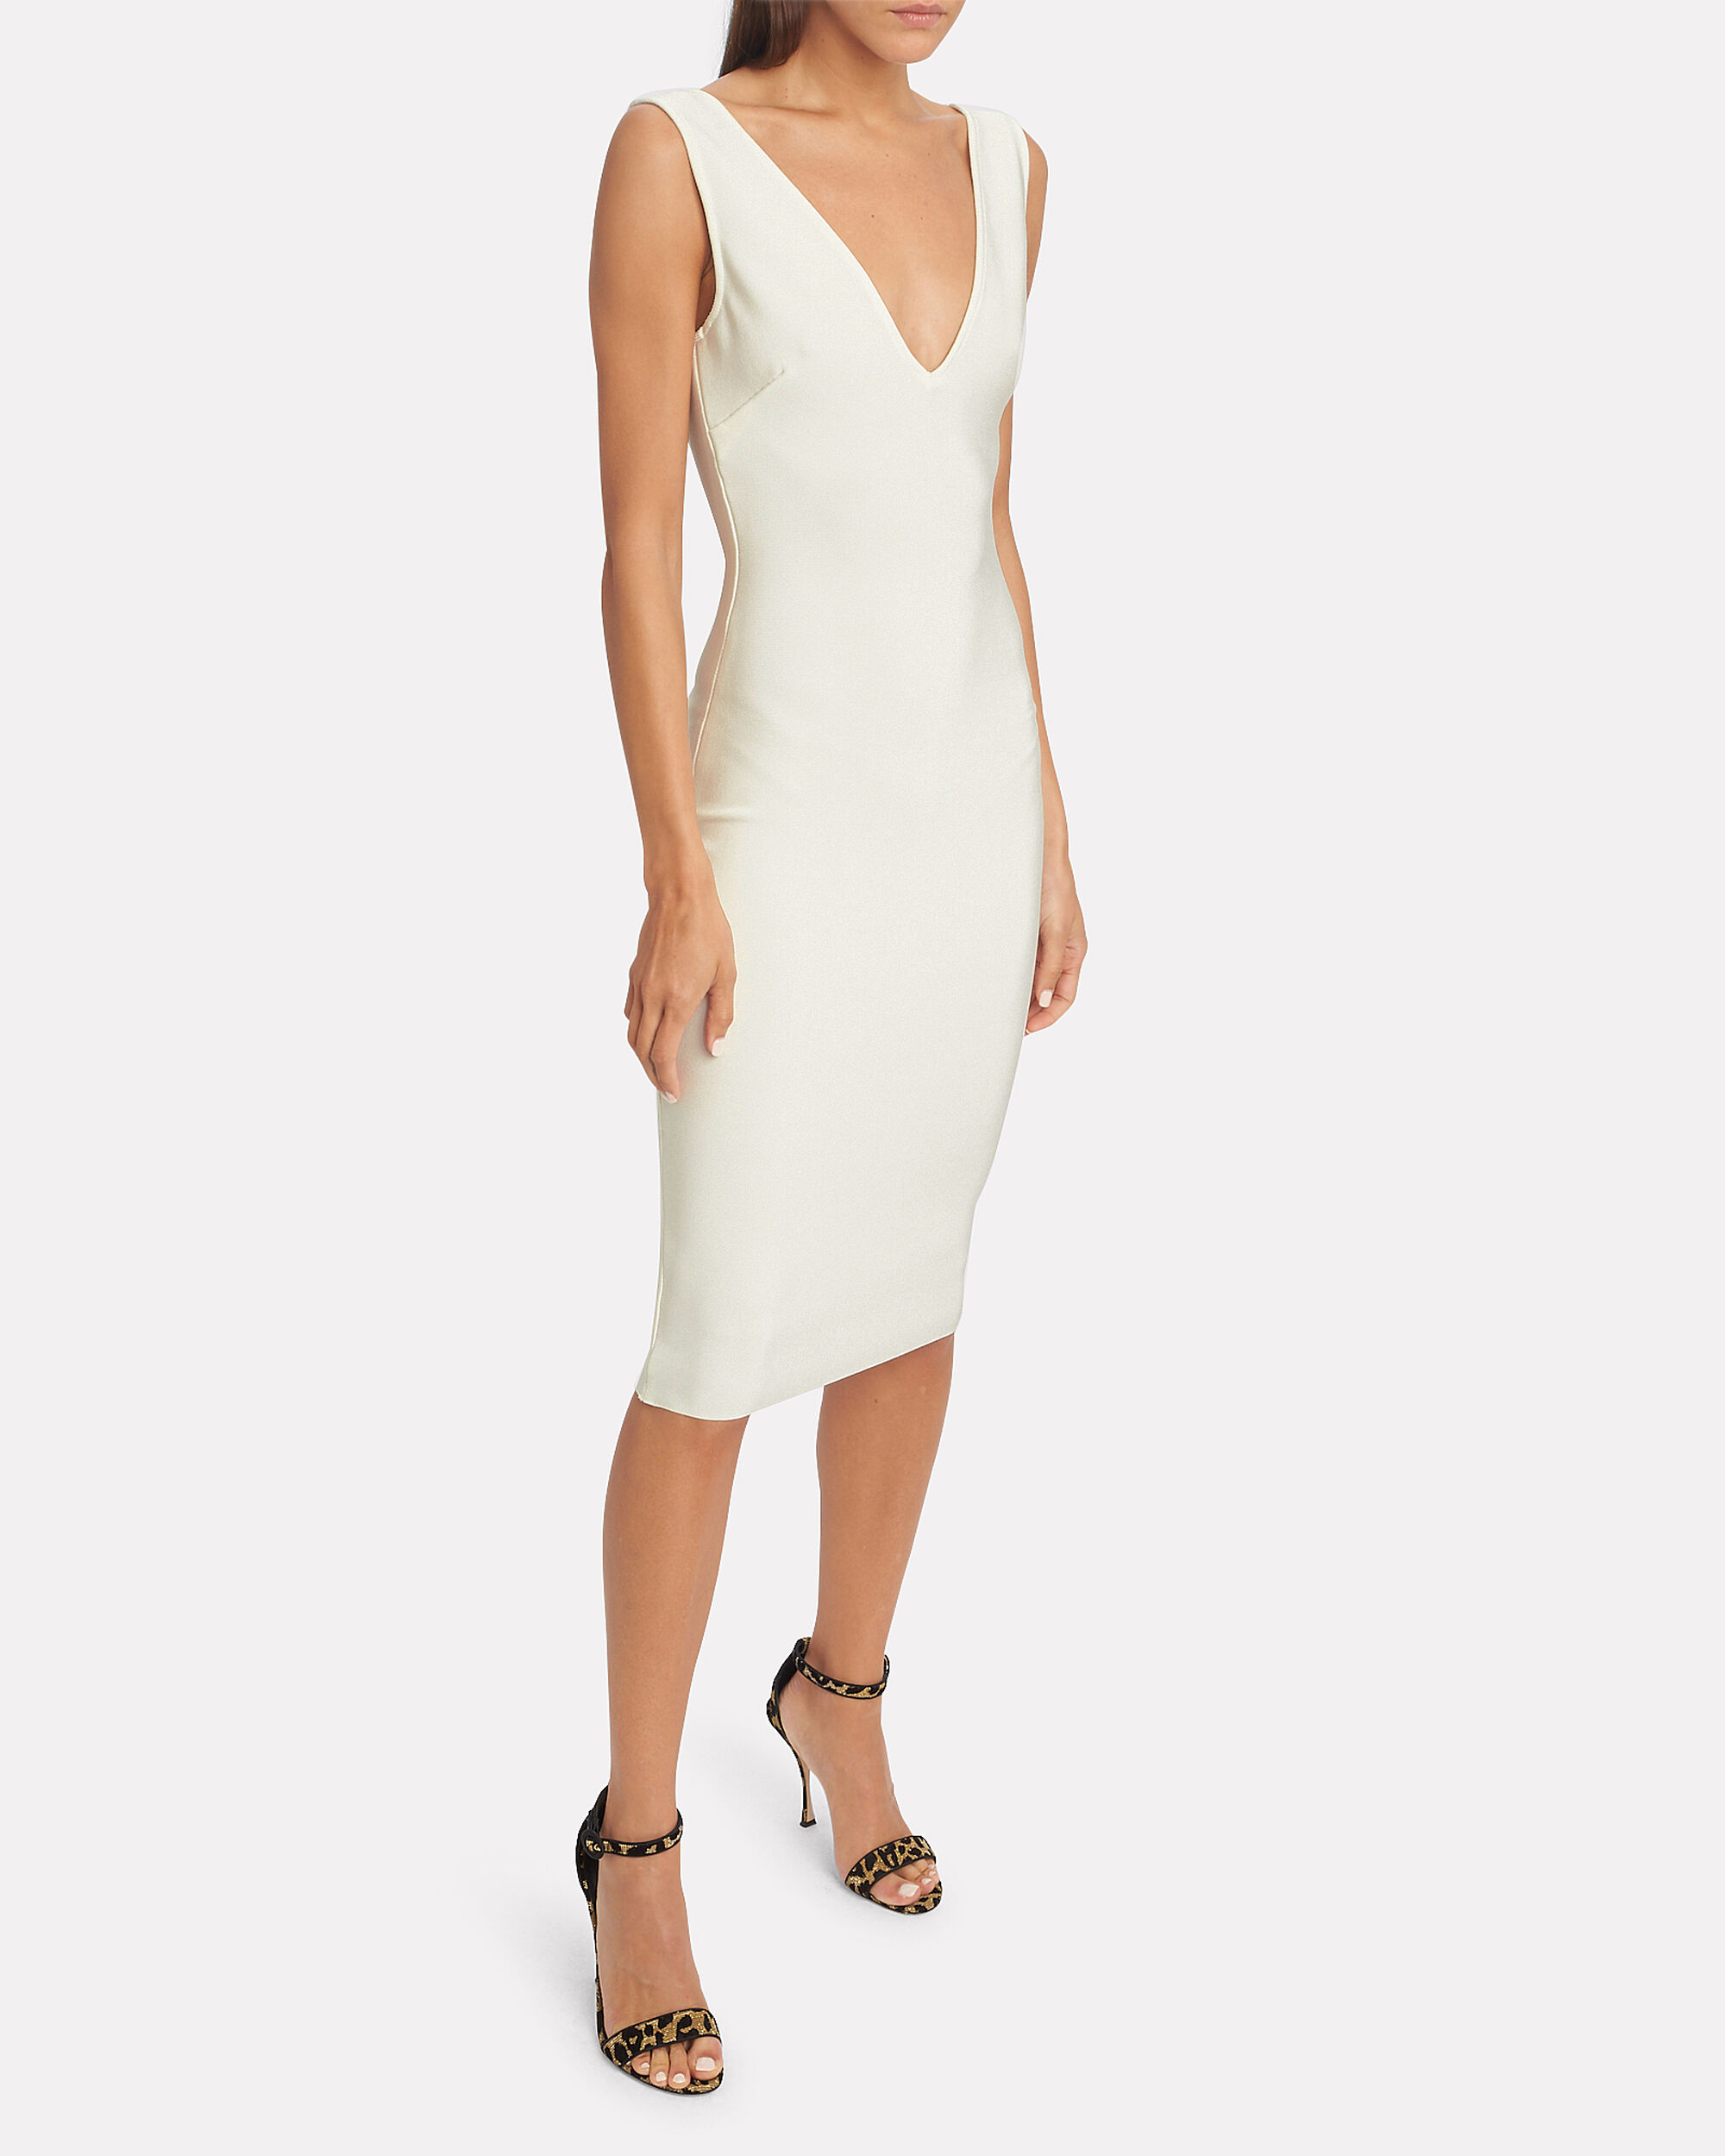 Solange Dress, IVORY, hi-res